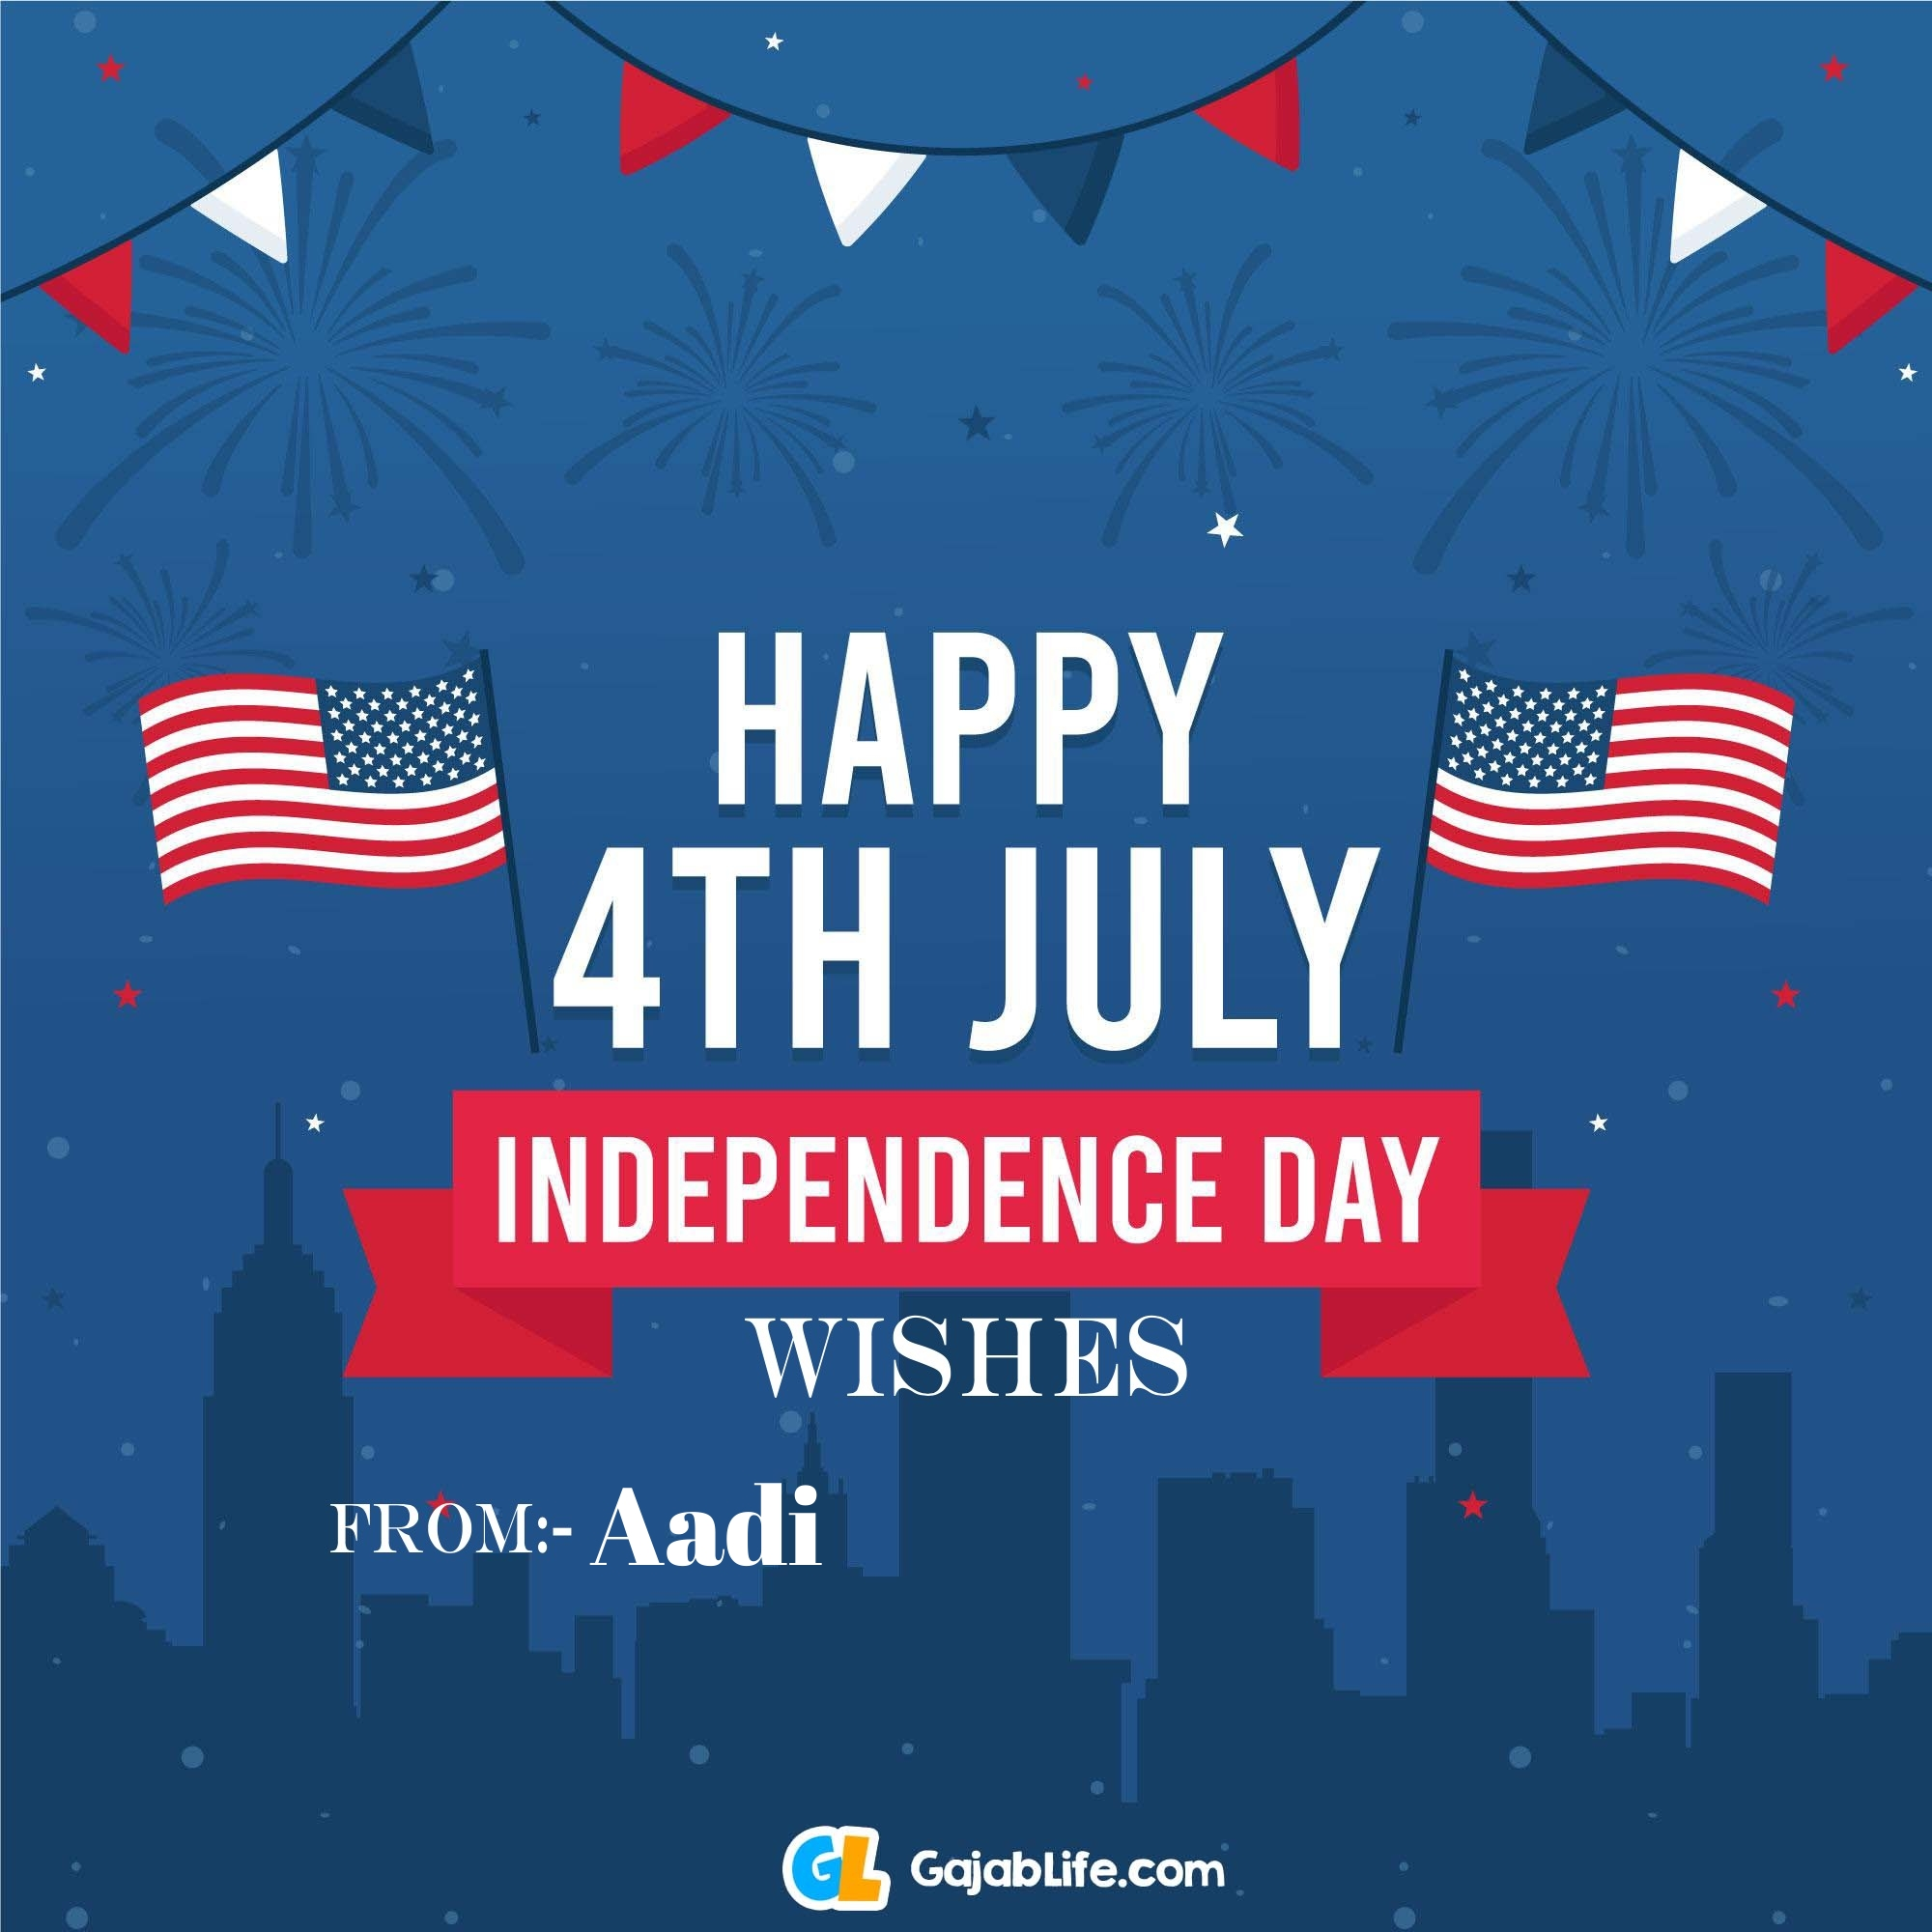 Aadi happy independence day united states of america images